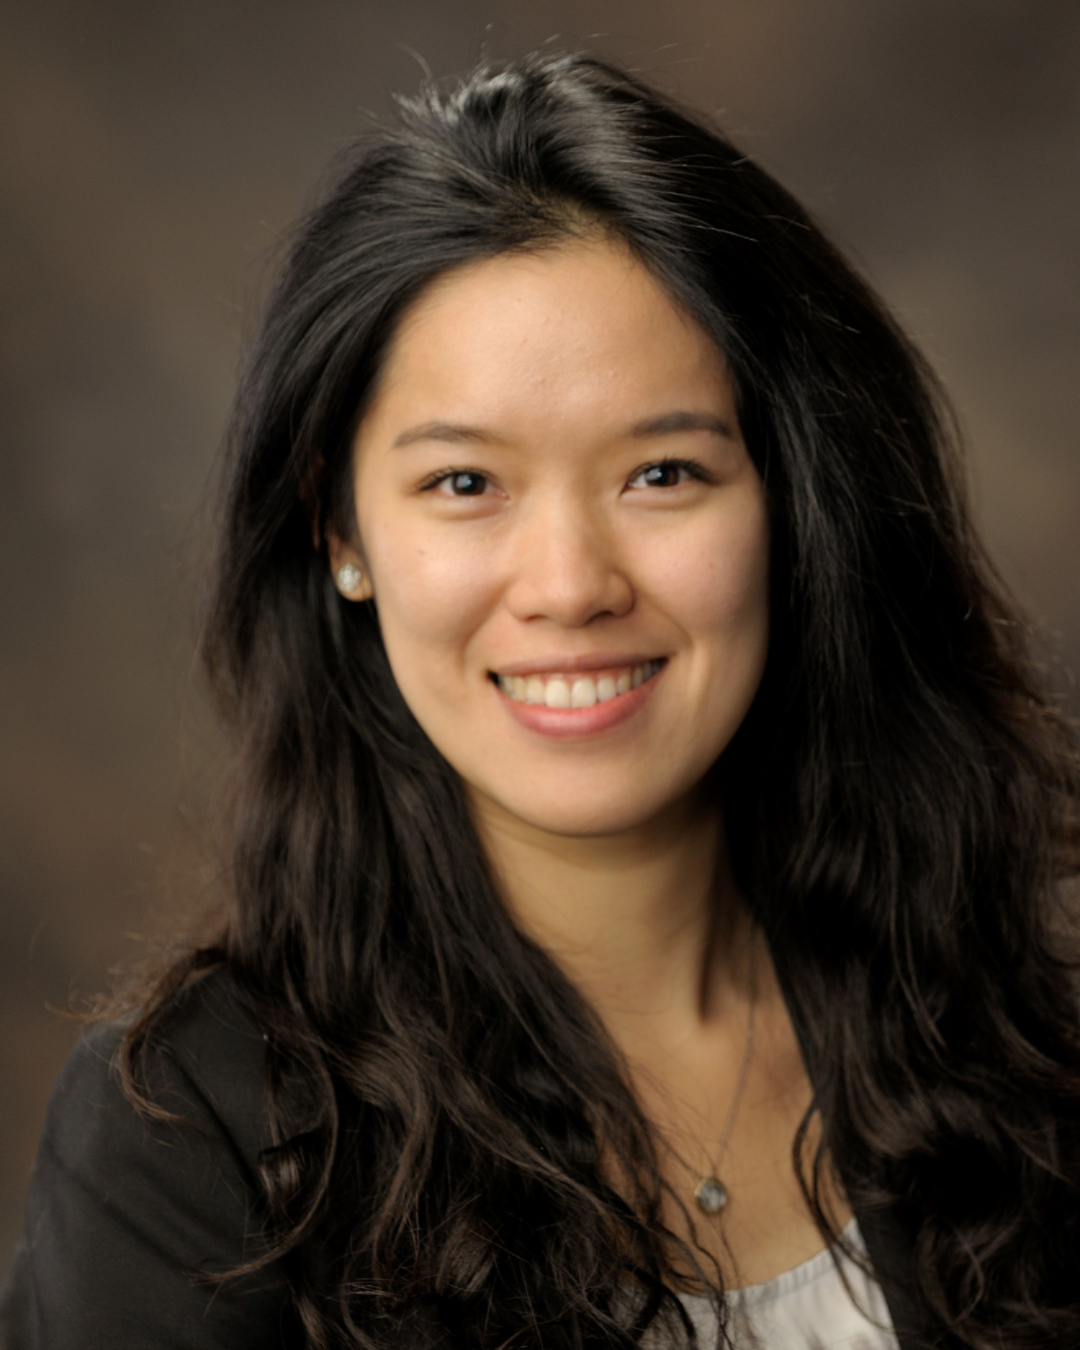 Tzu-Wen Cross, assistant professor of nutrition science